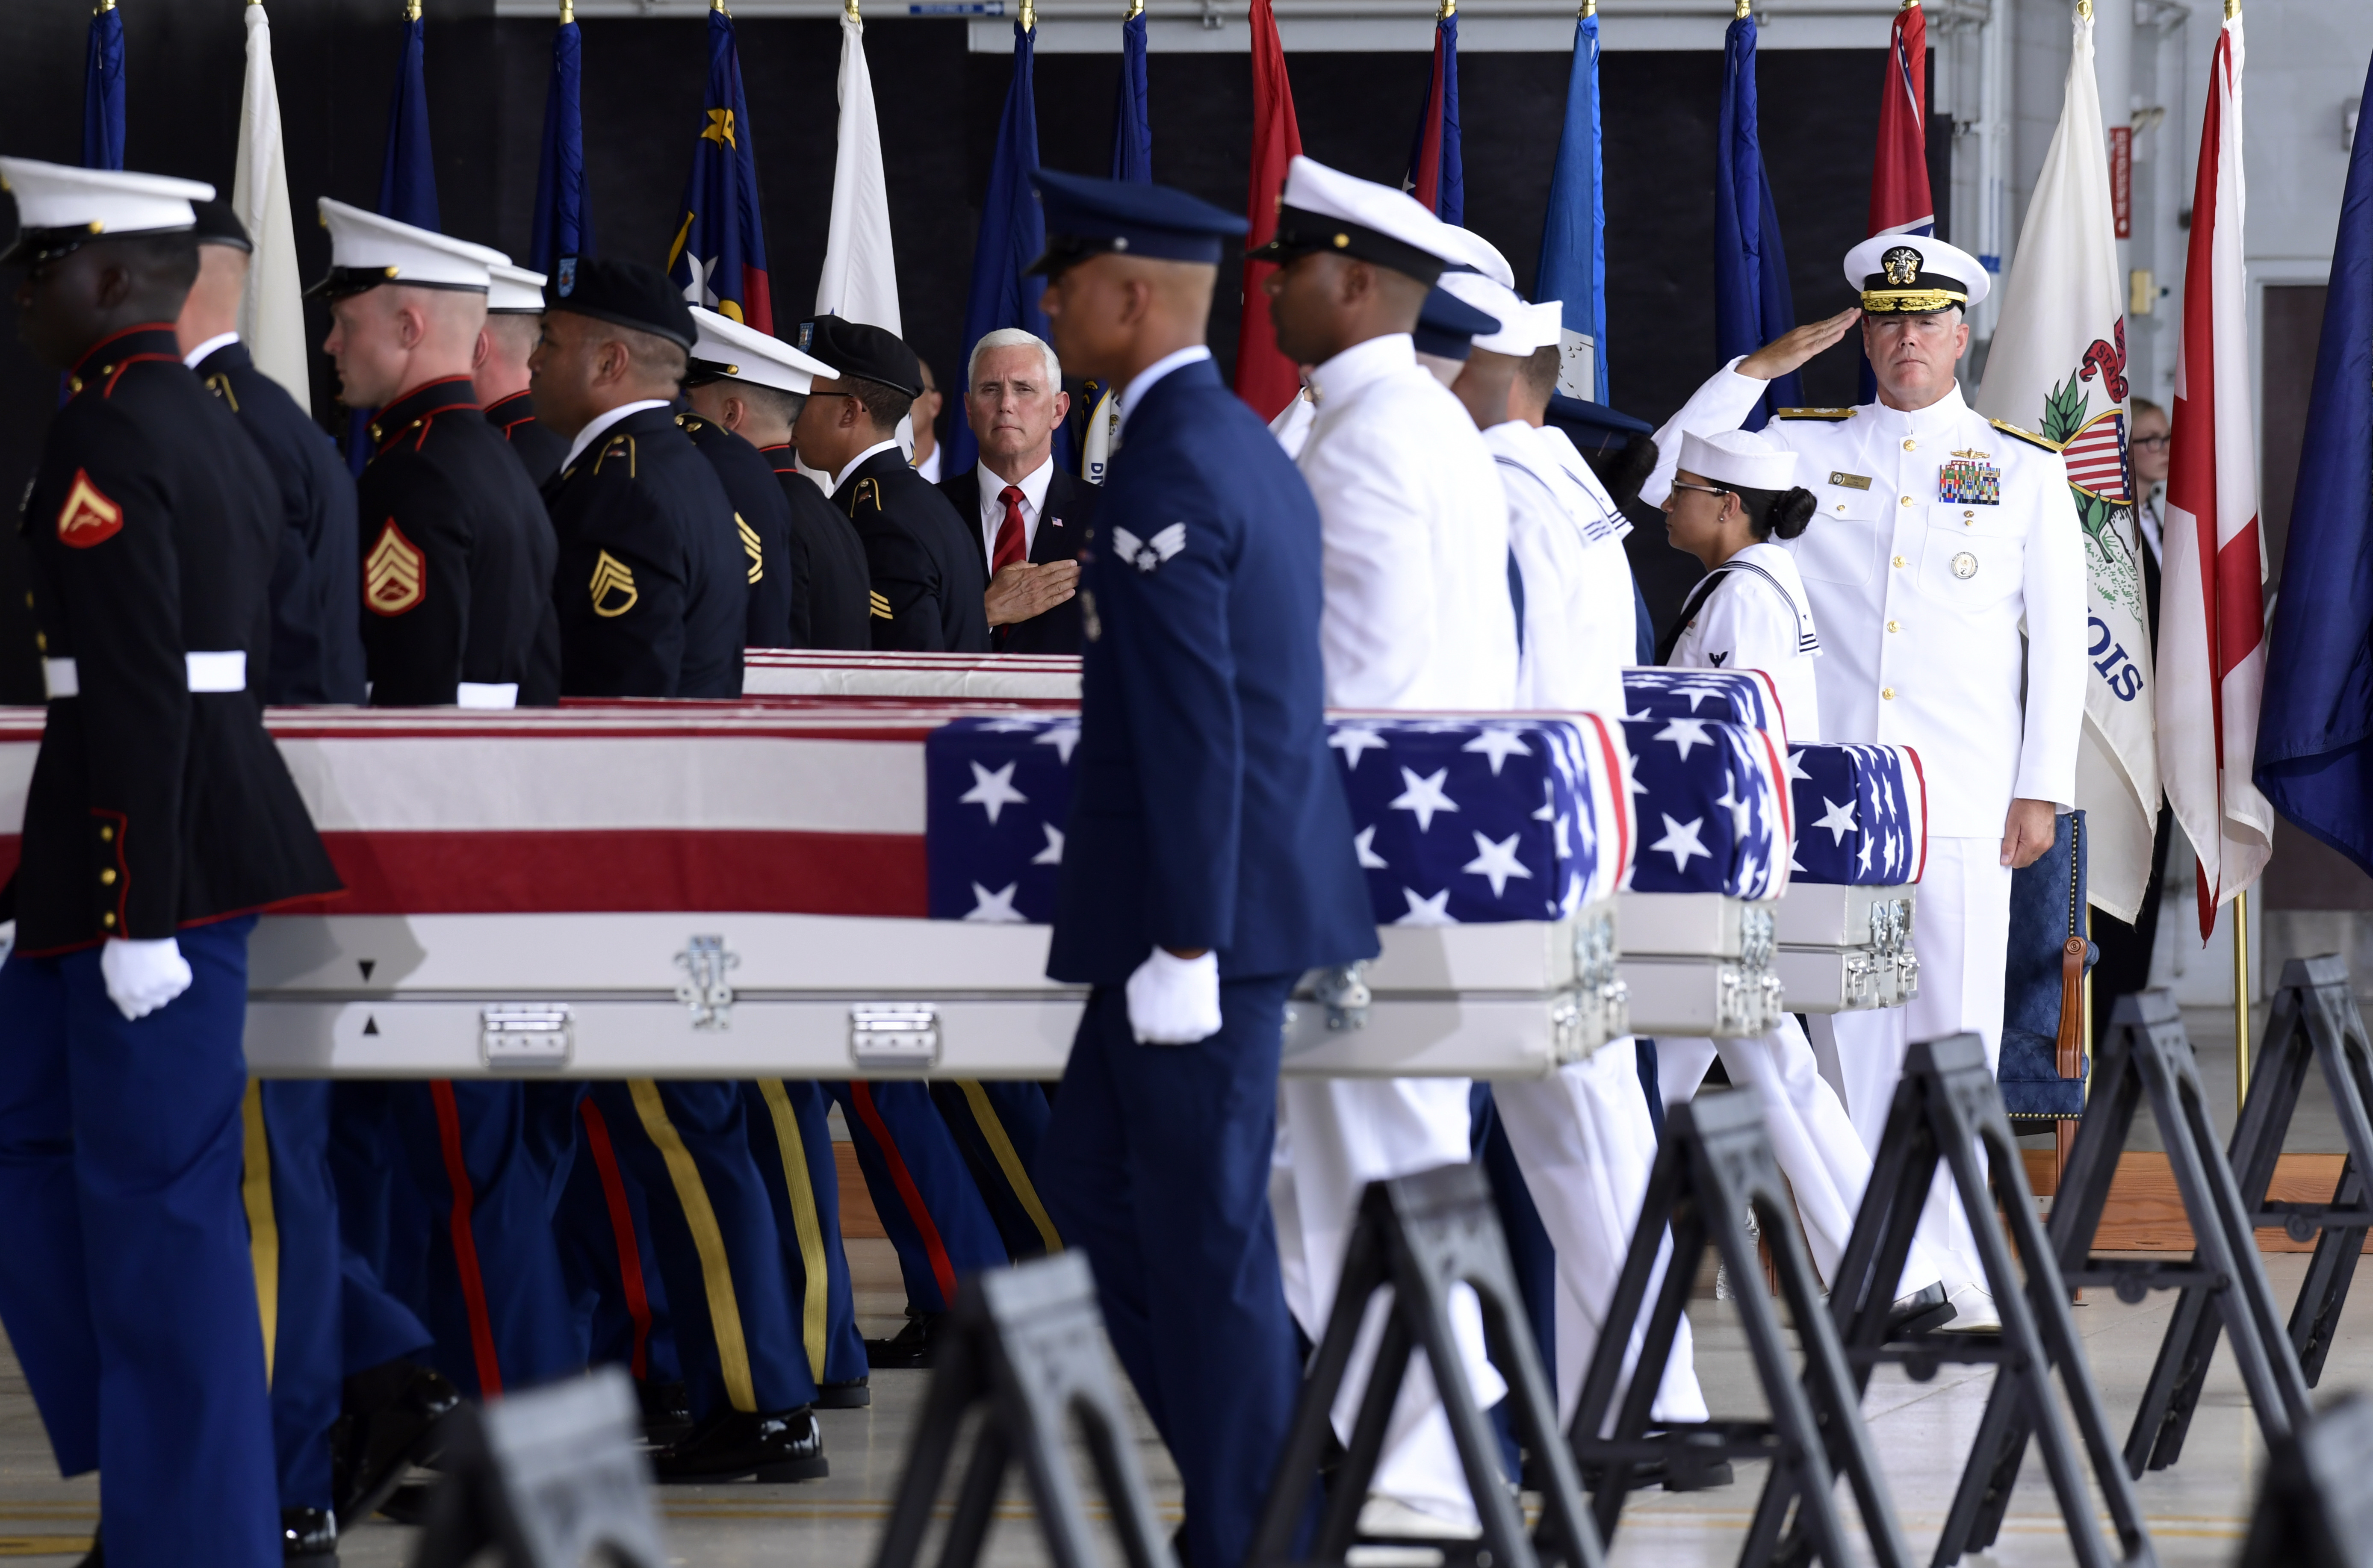 A ceremony marking arrival of remains believed to be of U.S. service members who fell in the Korean War at Joint Base Pearl Harbor-Hickam, Hawaii on Aug. 1, 2018.